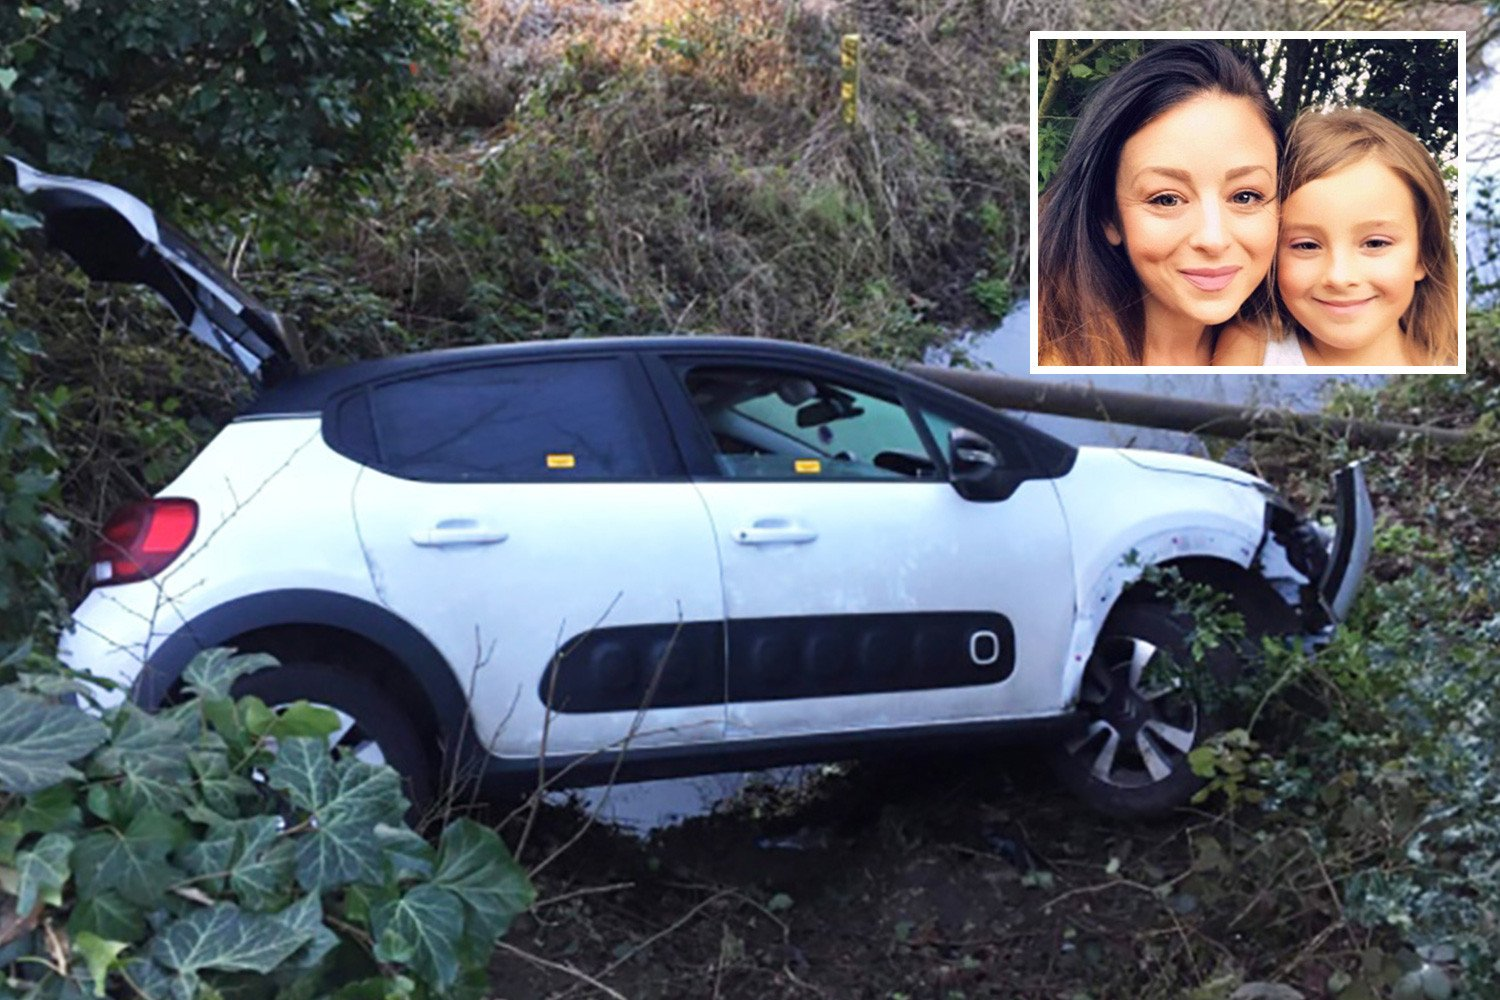 Mum and daughter, 7, rescued from horror car crash when boy tracked them down on Snapchat